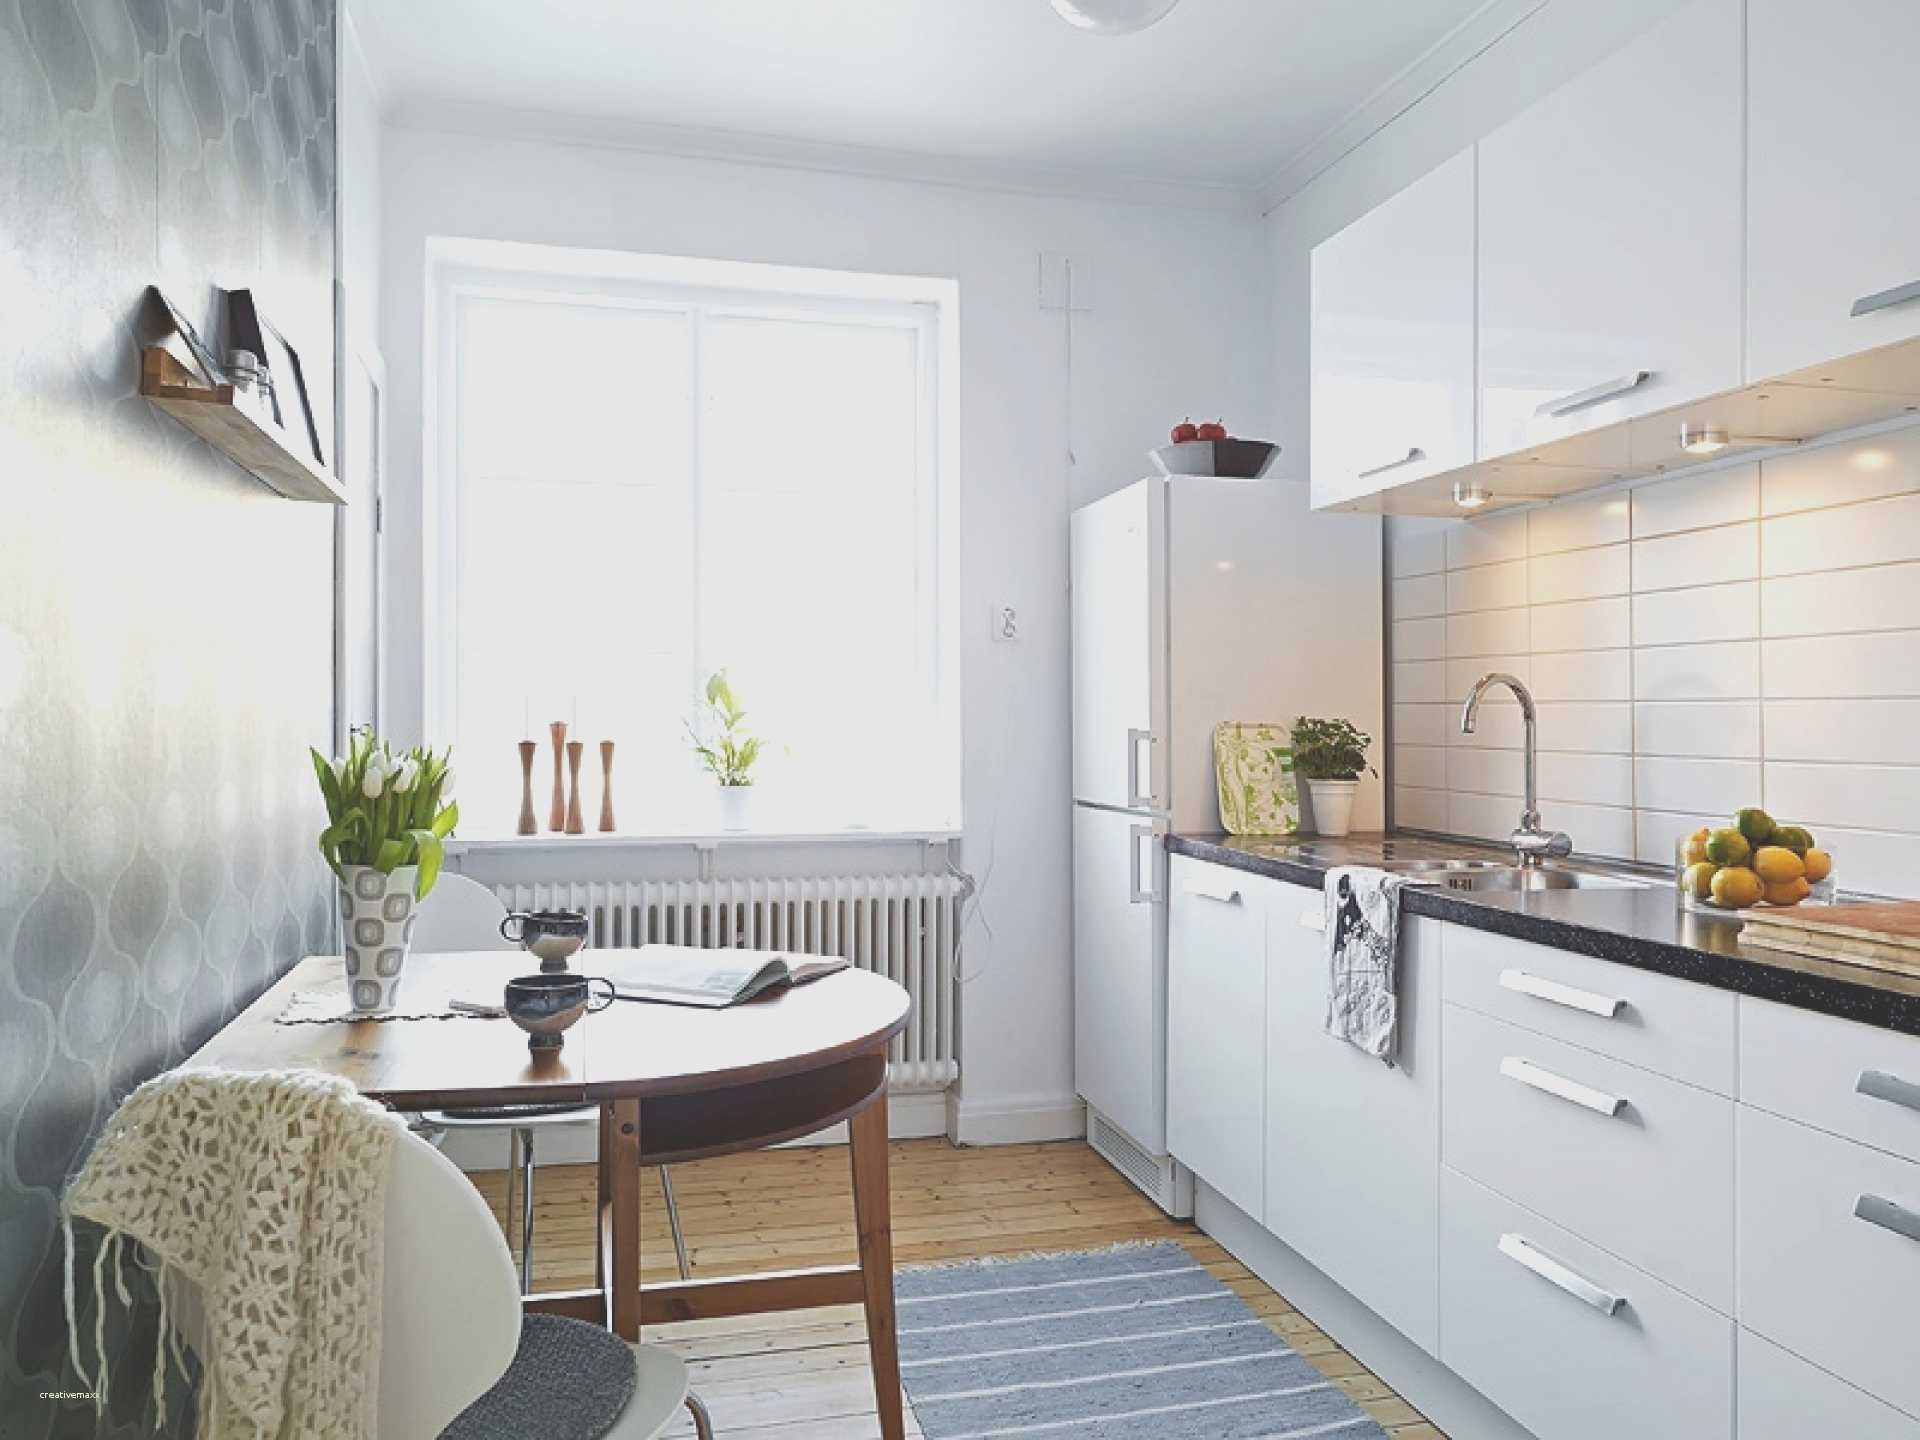 Apartment kitchen decorating ideas on a budget new apartment